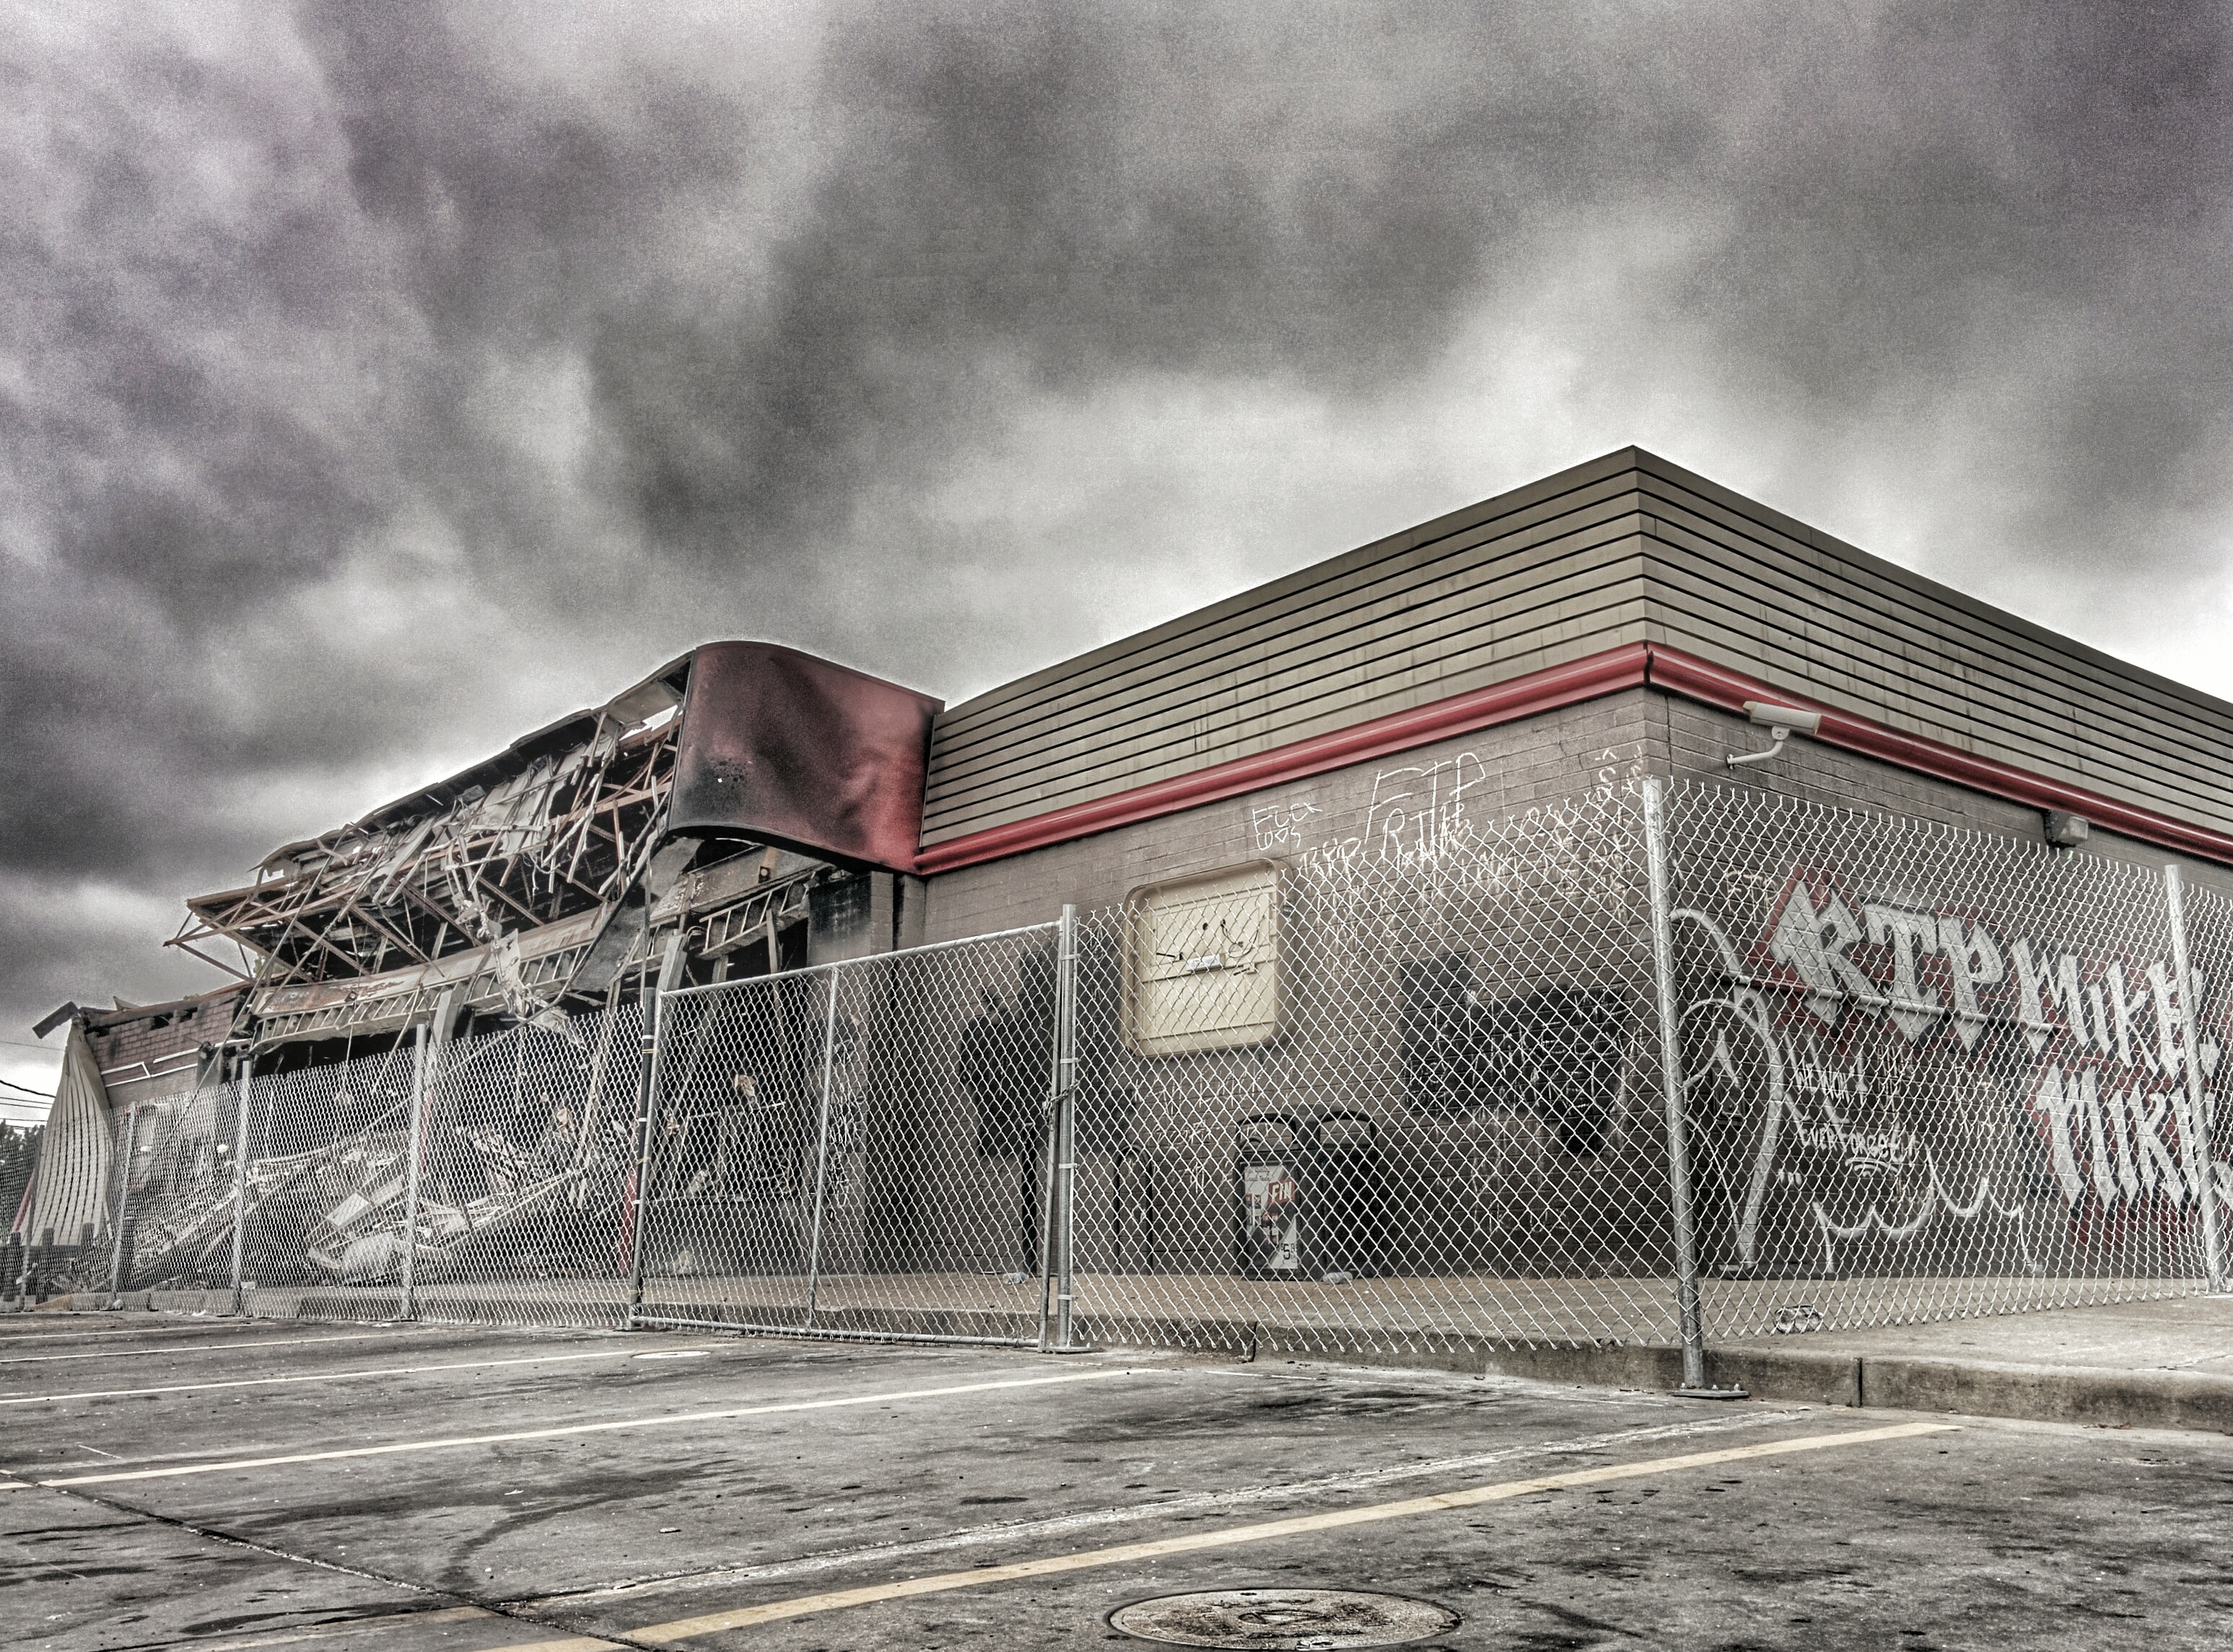 Destroyed QT in Ferguson  Image by Omar O'Hara